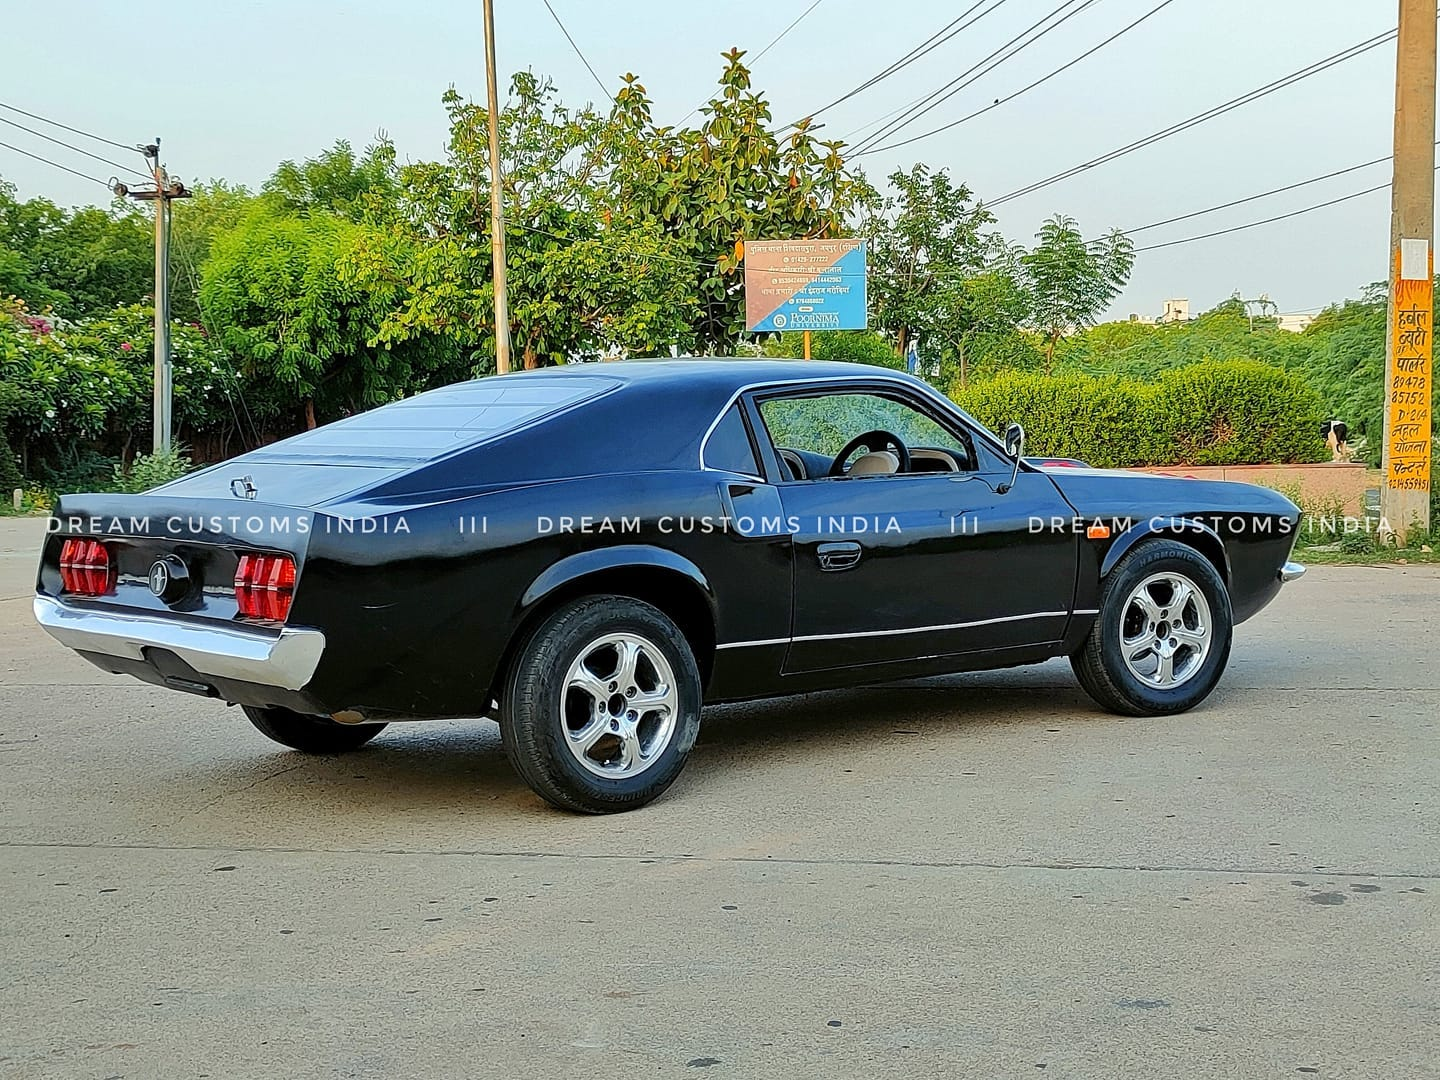 Ford-Mustang-replica-Hyundai-Accent-5